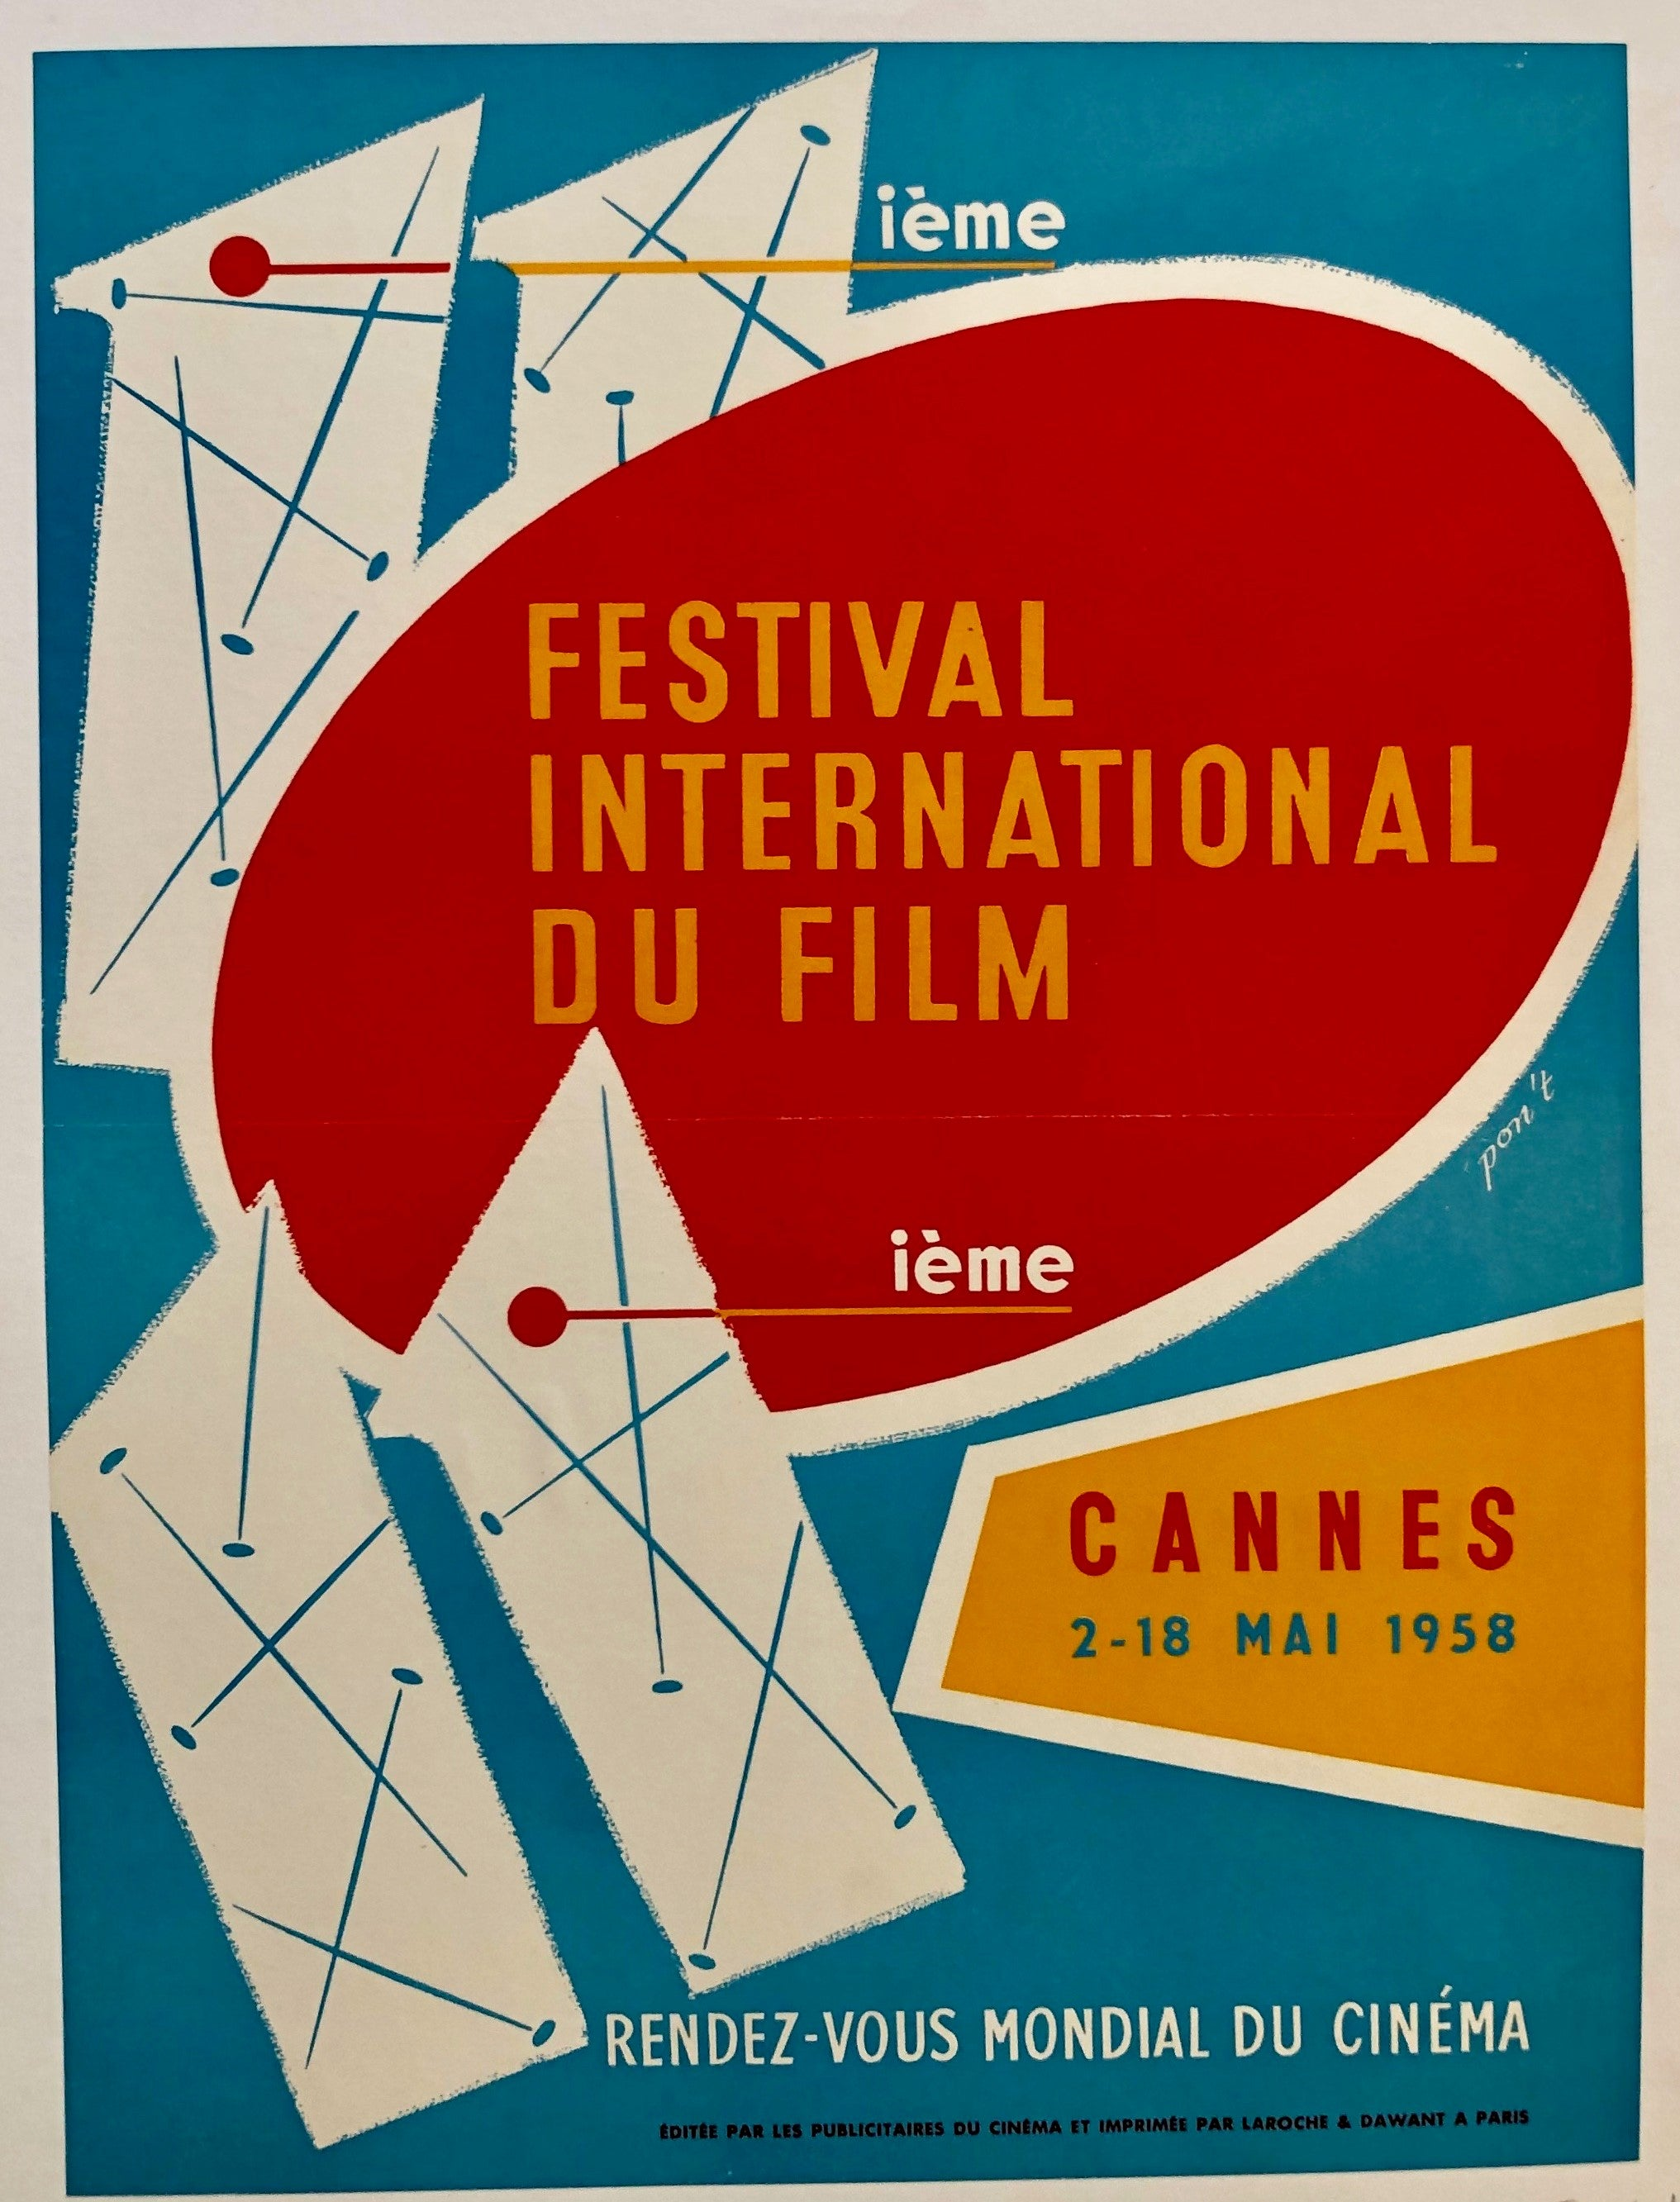 Festival International du Film - Cannes 2-18 Mai 1958